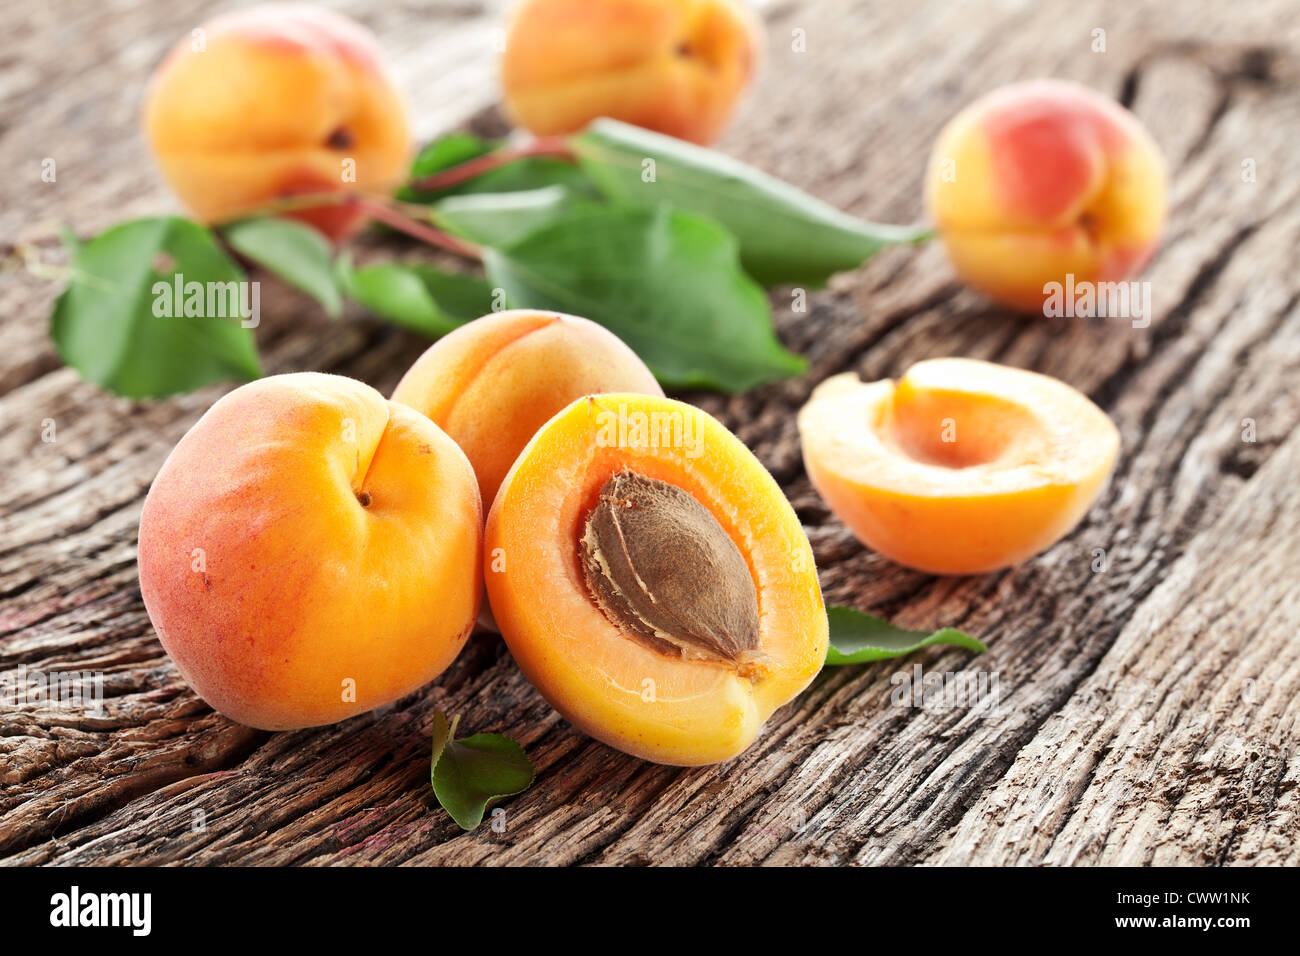 Apricots with leaves on the old wooden table. - Stock Image